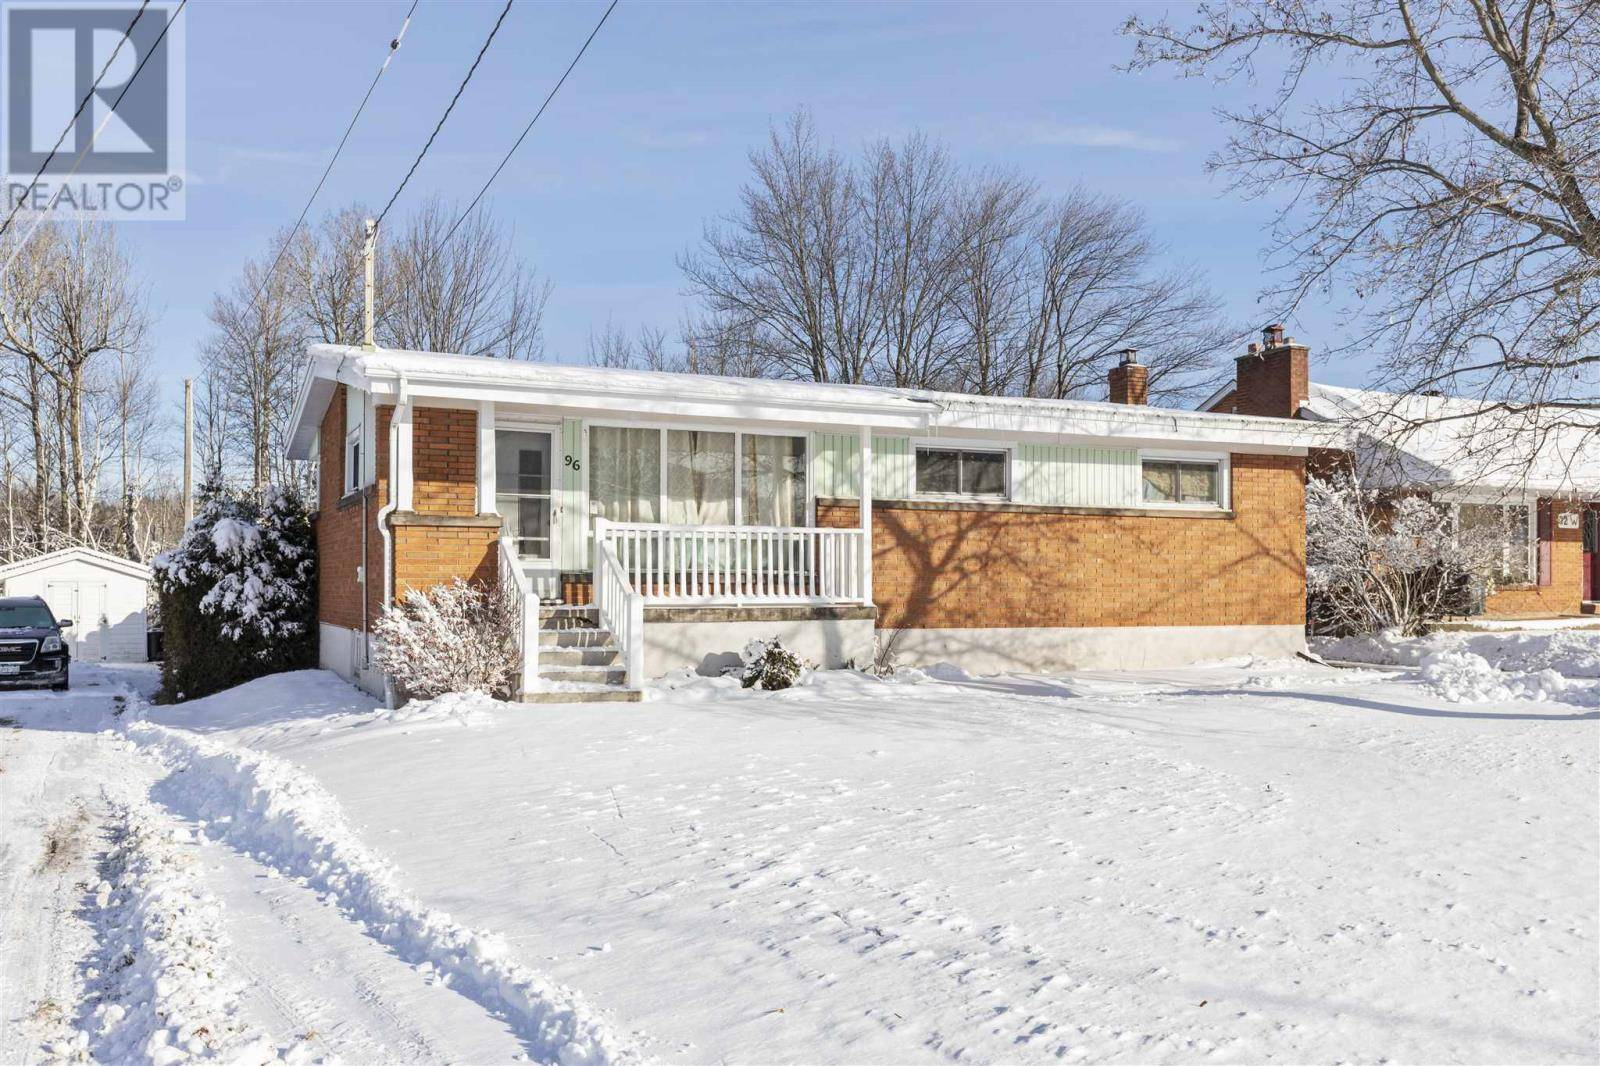 House for sale at 96 White Oak Dr W Sault Ste. Marie Ontario - MLS: SM127515